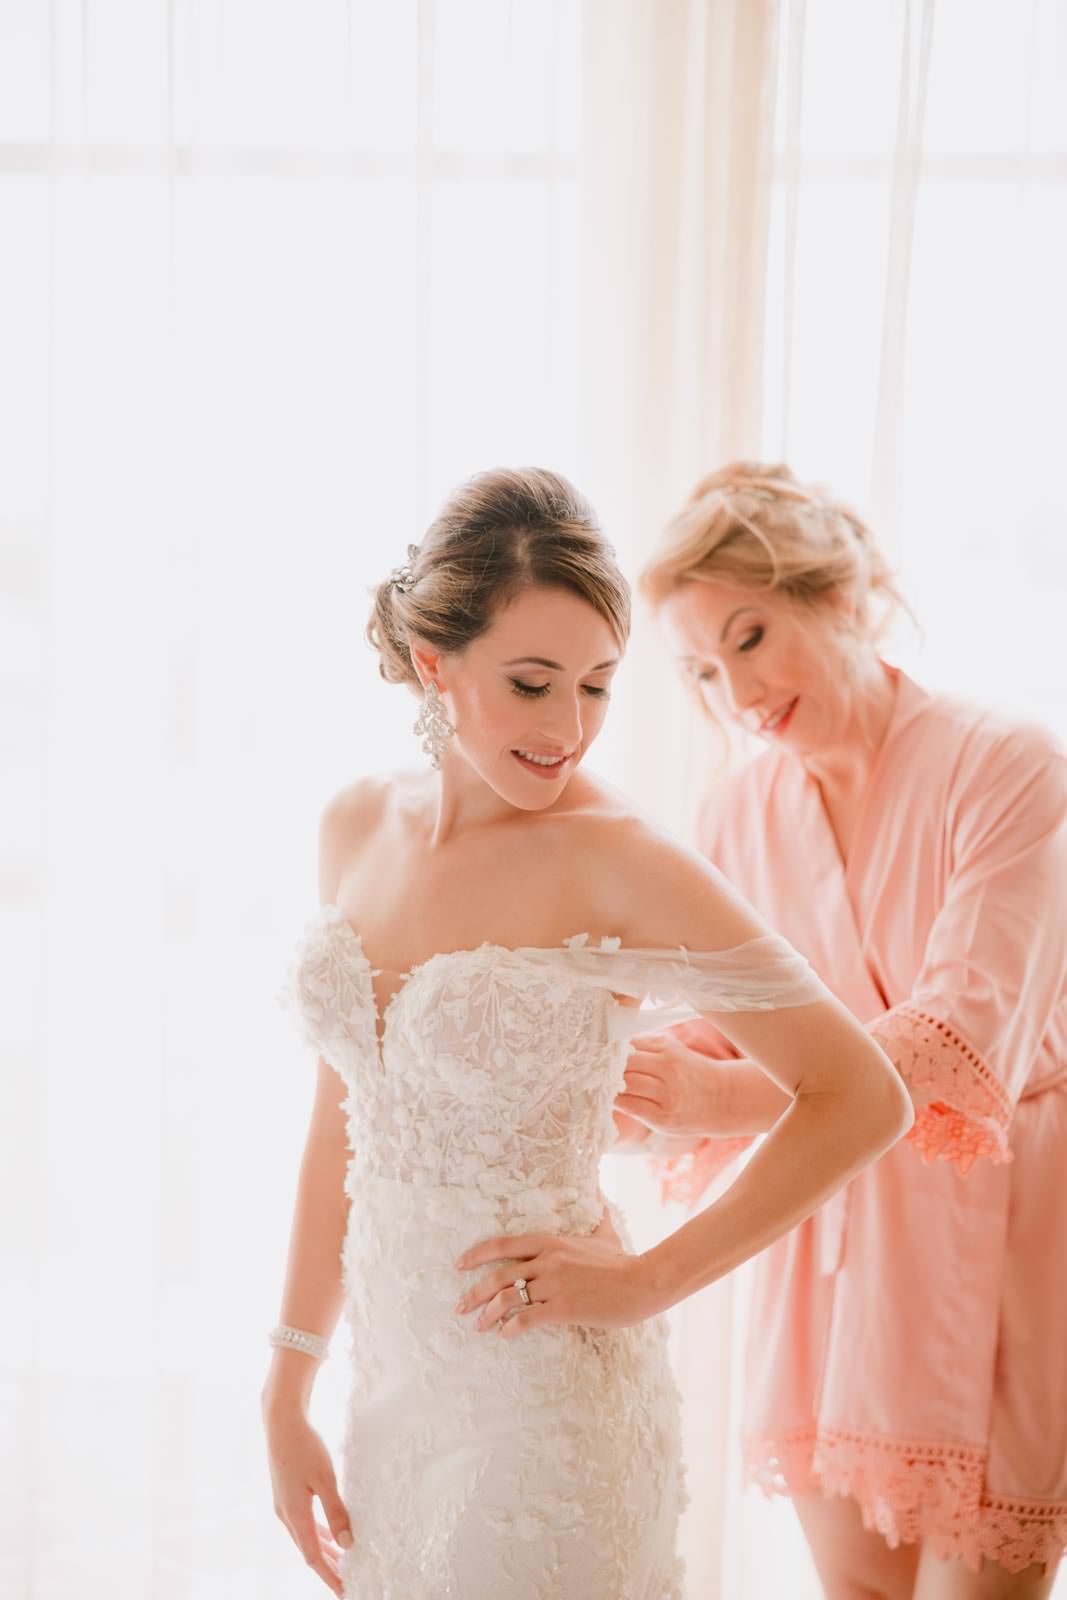 the bride is getting ready with her mother's help